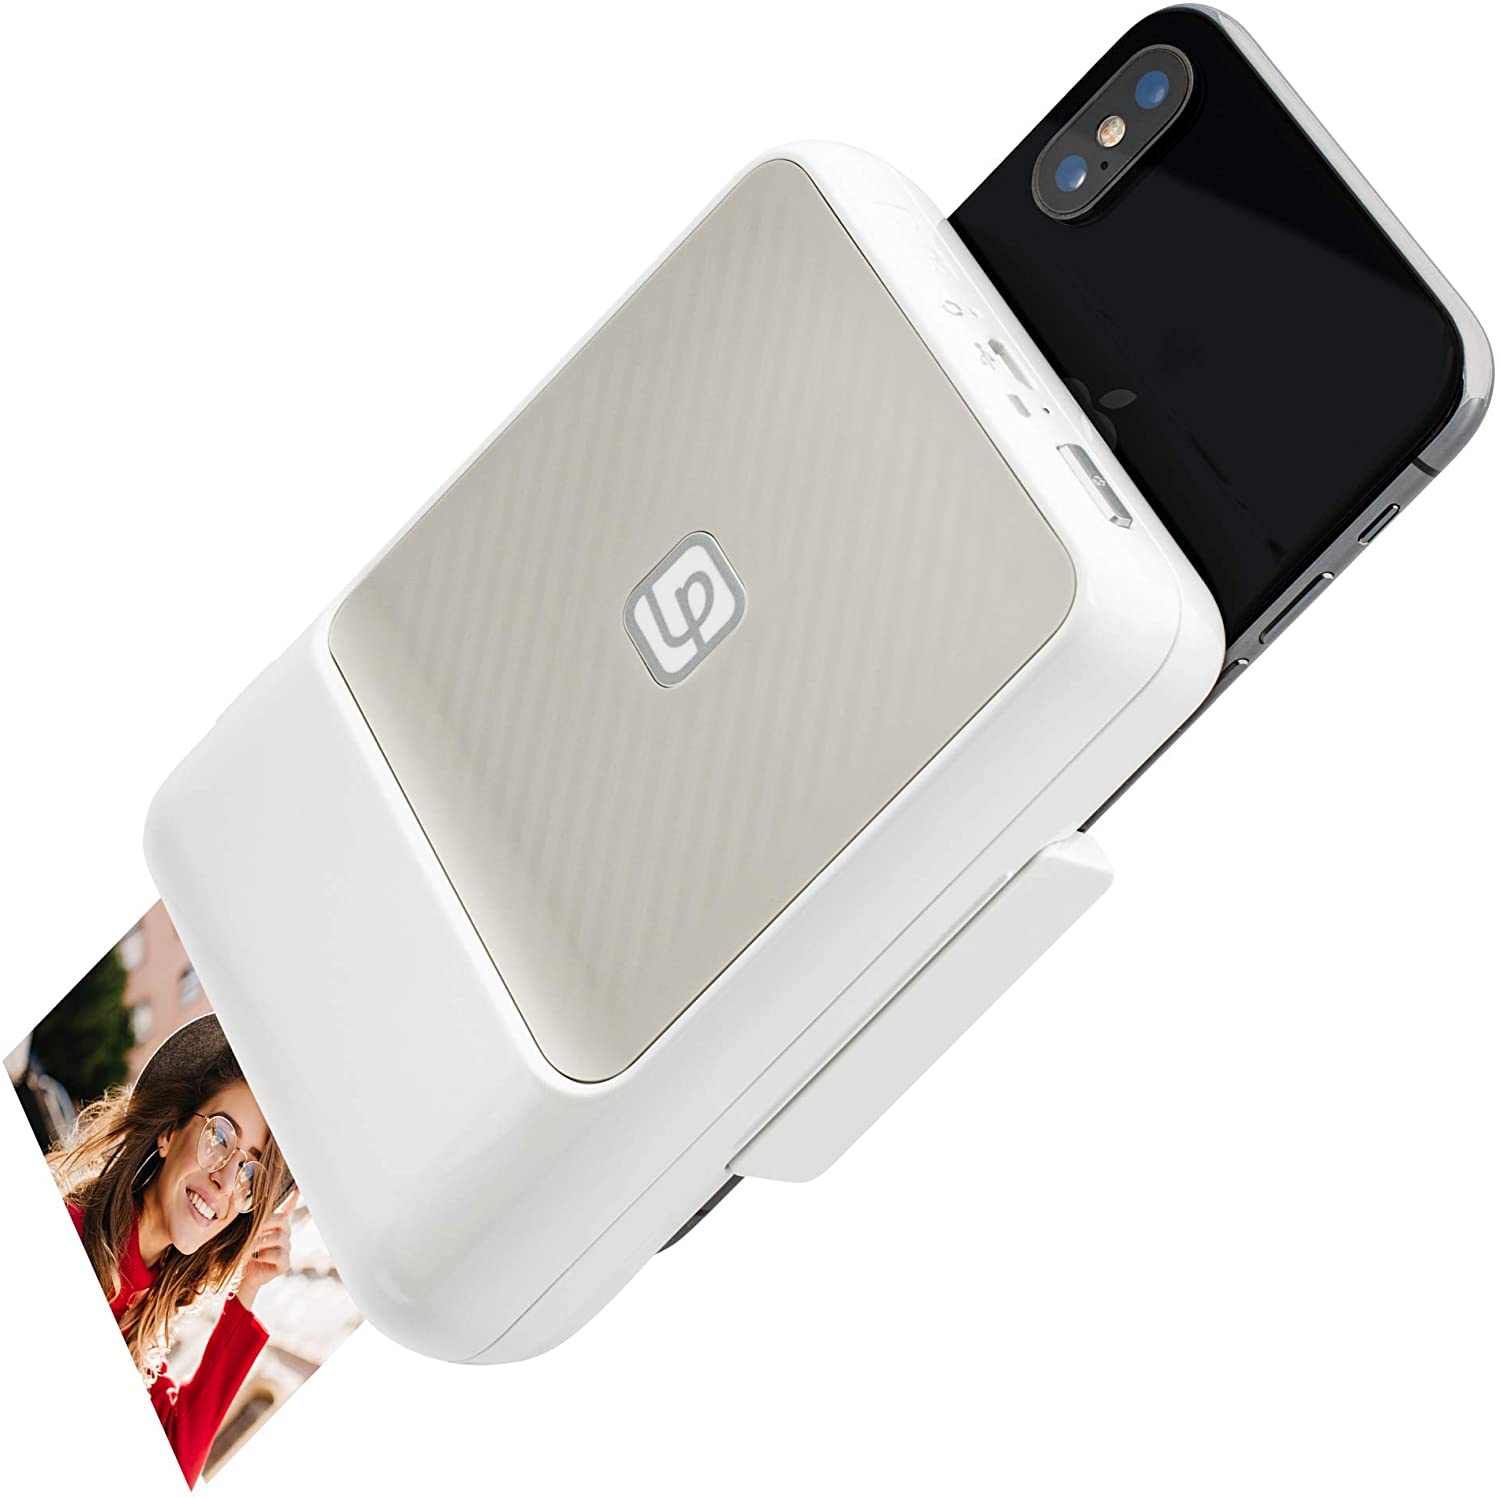 Lifeprint 2x3 Instant Printer for iPhone. Turn Your iPhone Into an Instant-Print Camera for Photos and Video! - White